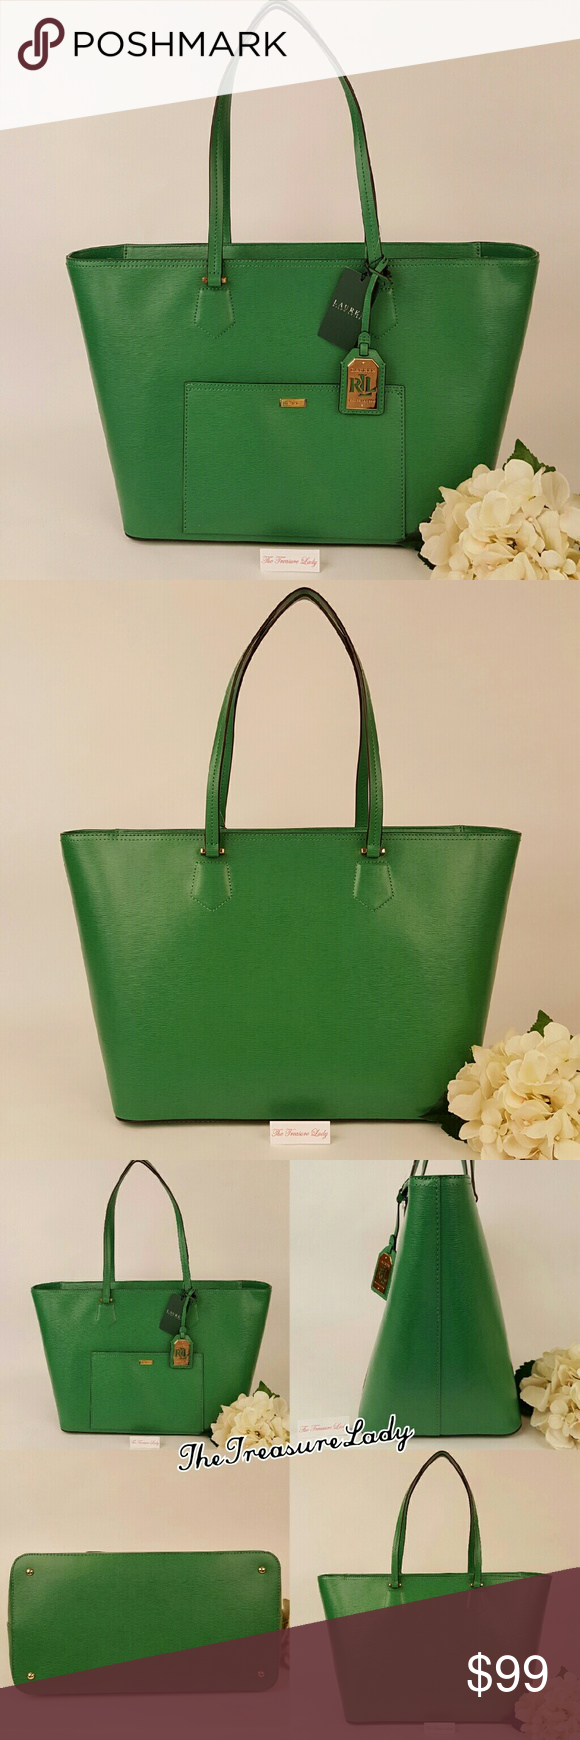 Ralph Lauren Lowell green tote bag handbag purse  Authentic  NWT  Style    431600601012  Large size tote  Green color  100% leather  Gold-tone  hardware   Zip ... 532121c7a8